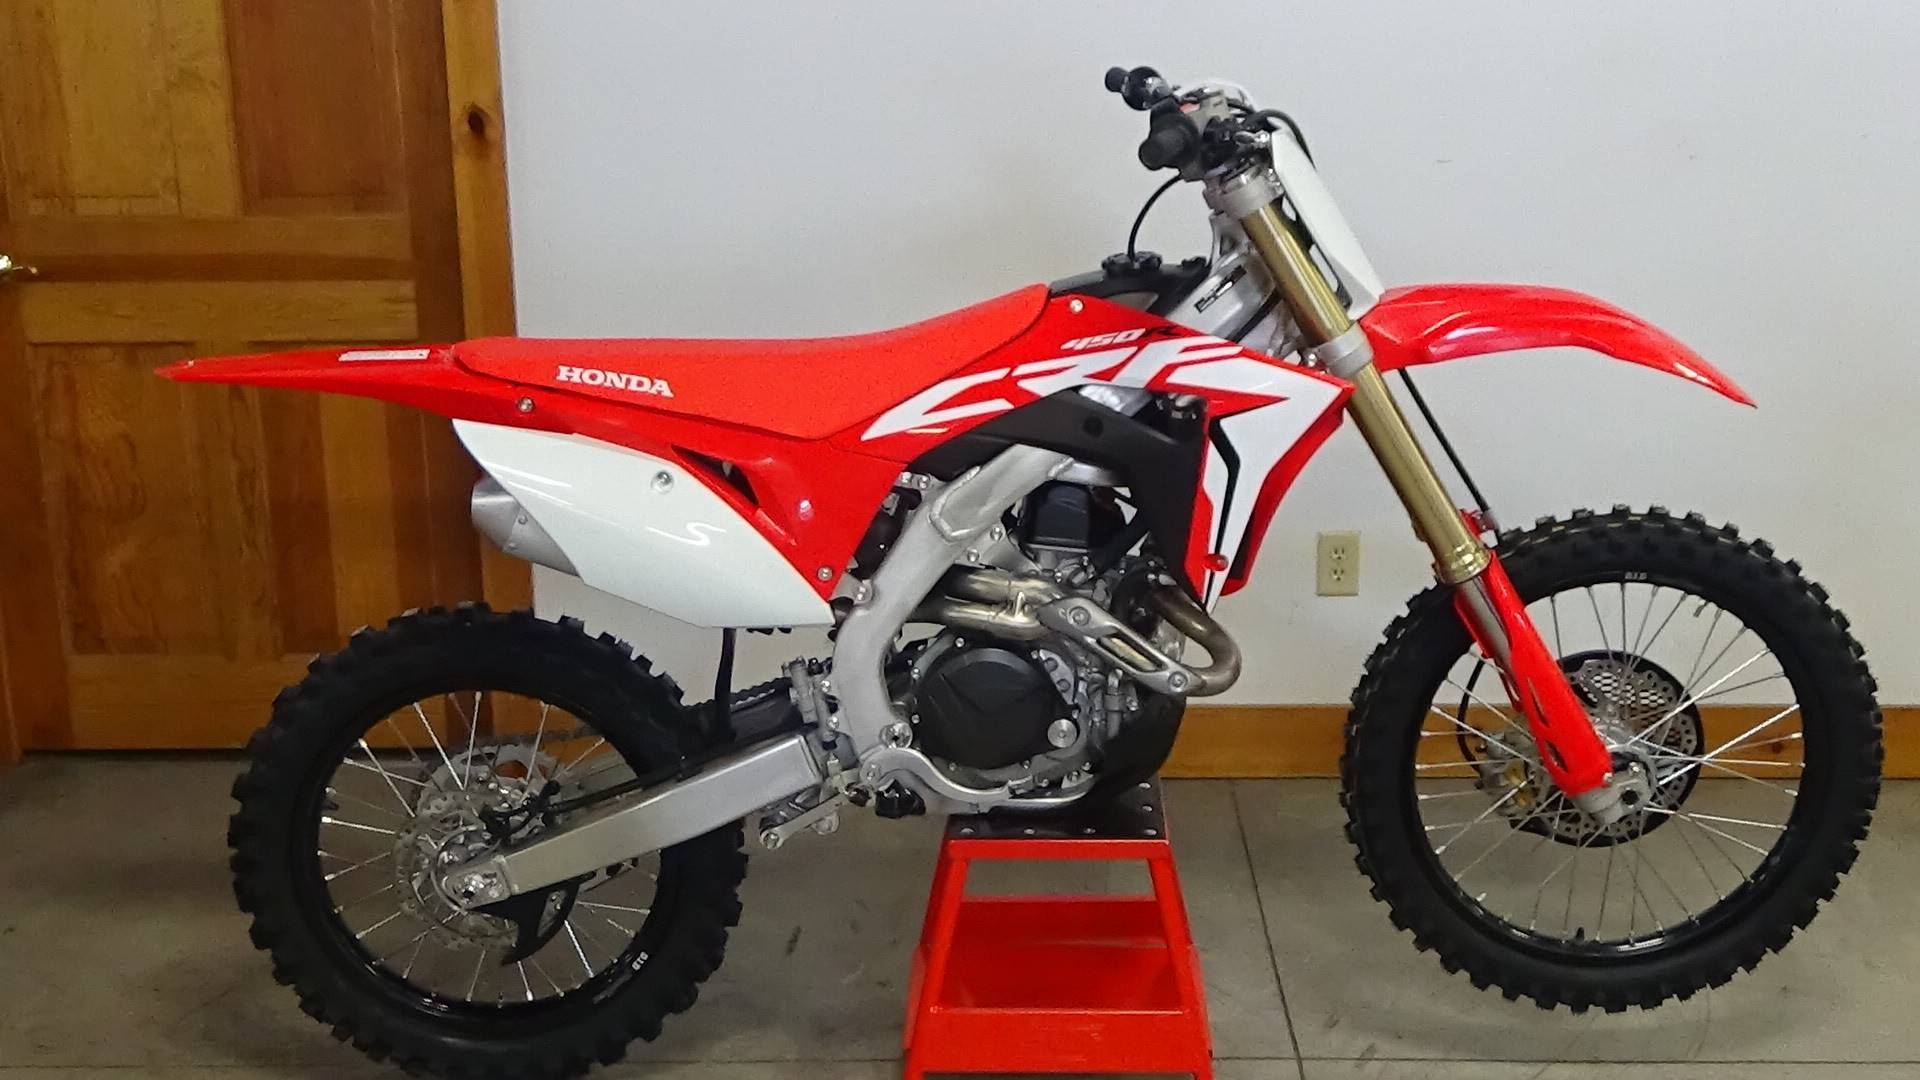 New 2019 Honda Crf450r Motorcycles In Adams Ma Stock Number 201142